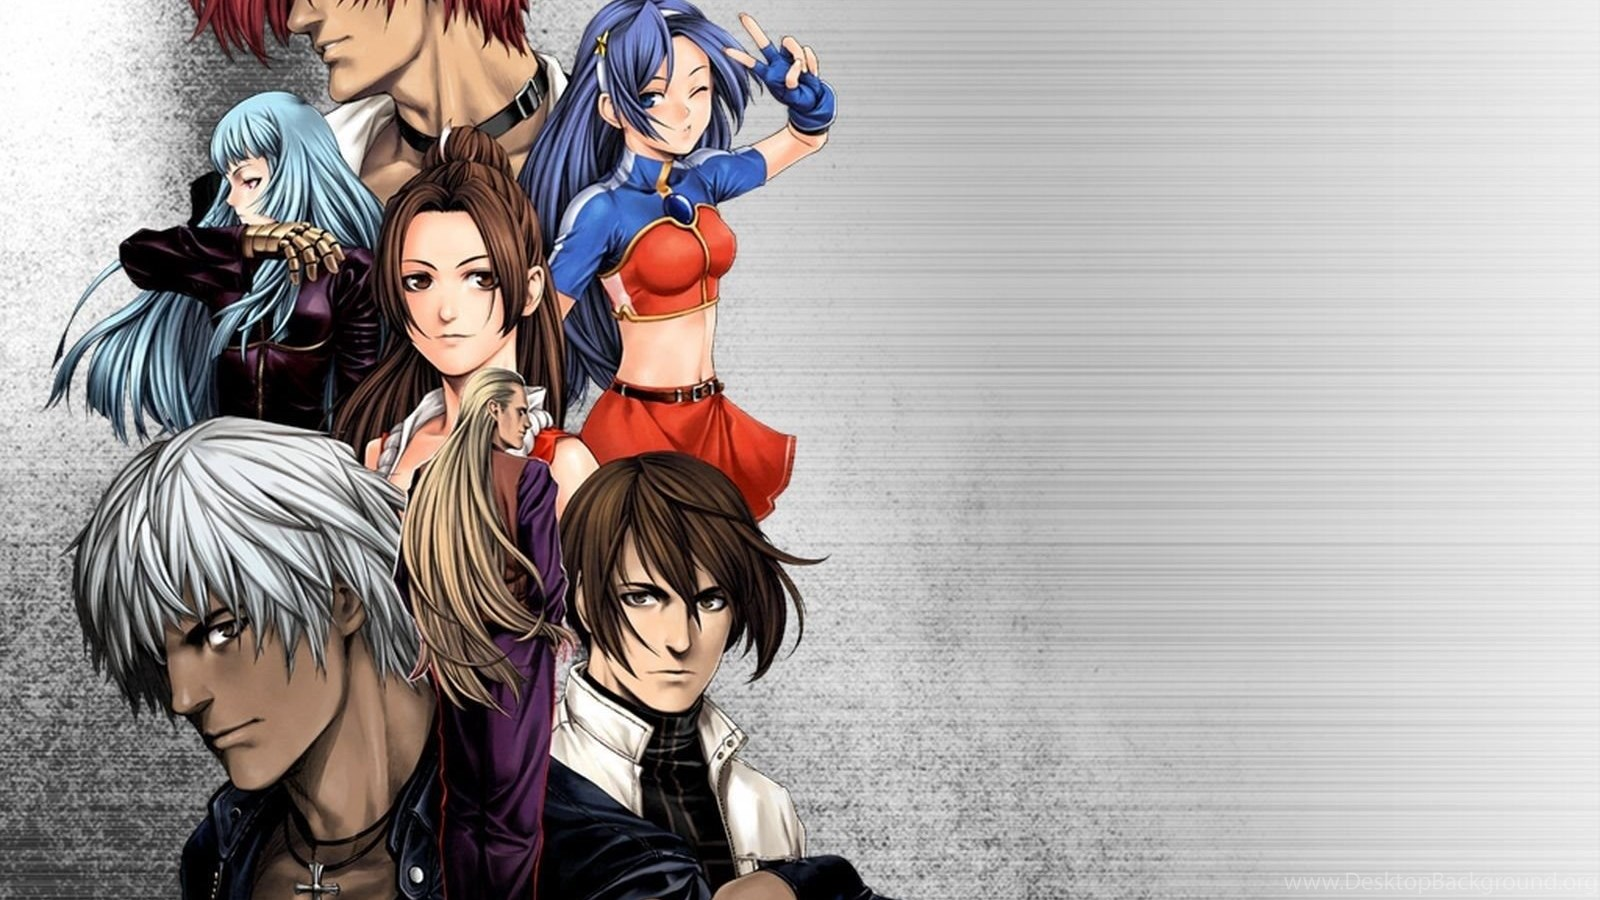 King Of Fighters Wallpapers Hd Desktop Background